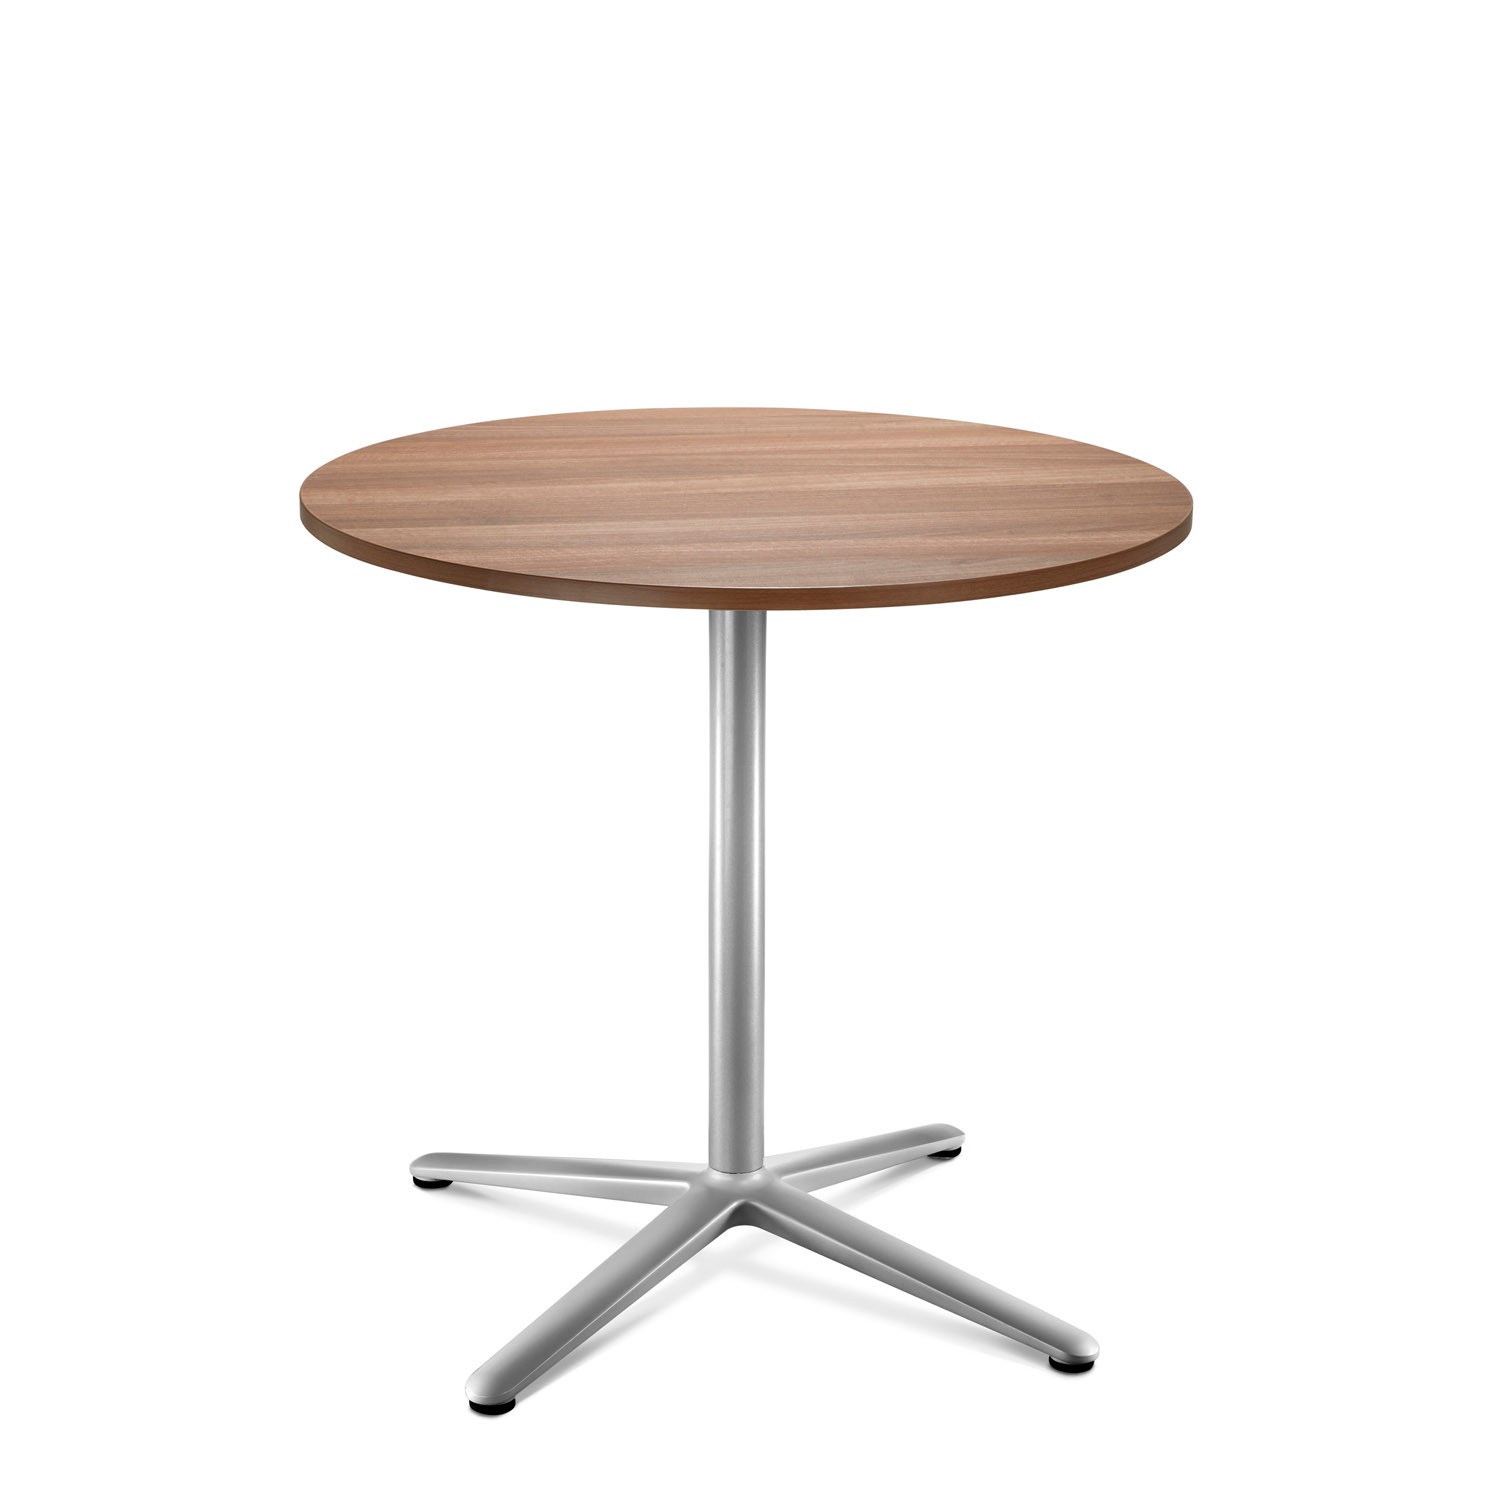 Swoosh Dining Table - Round